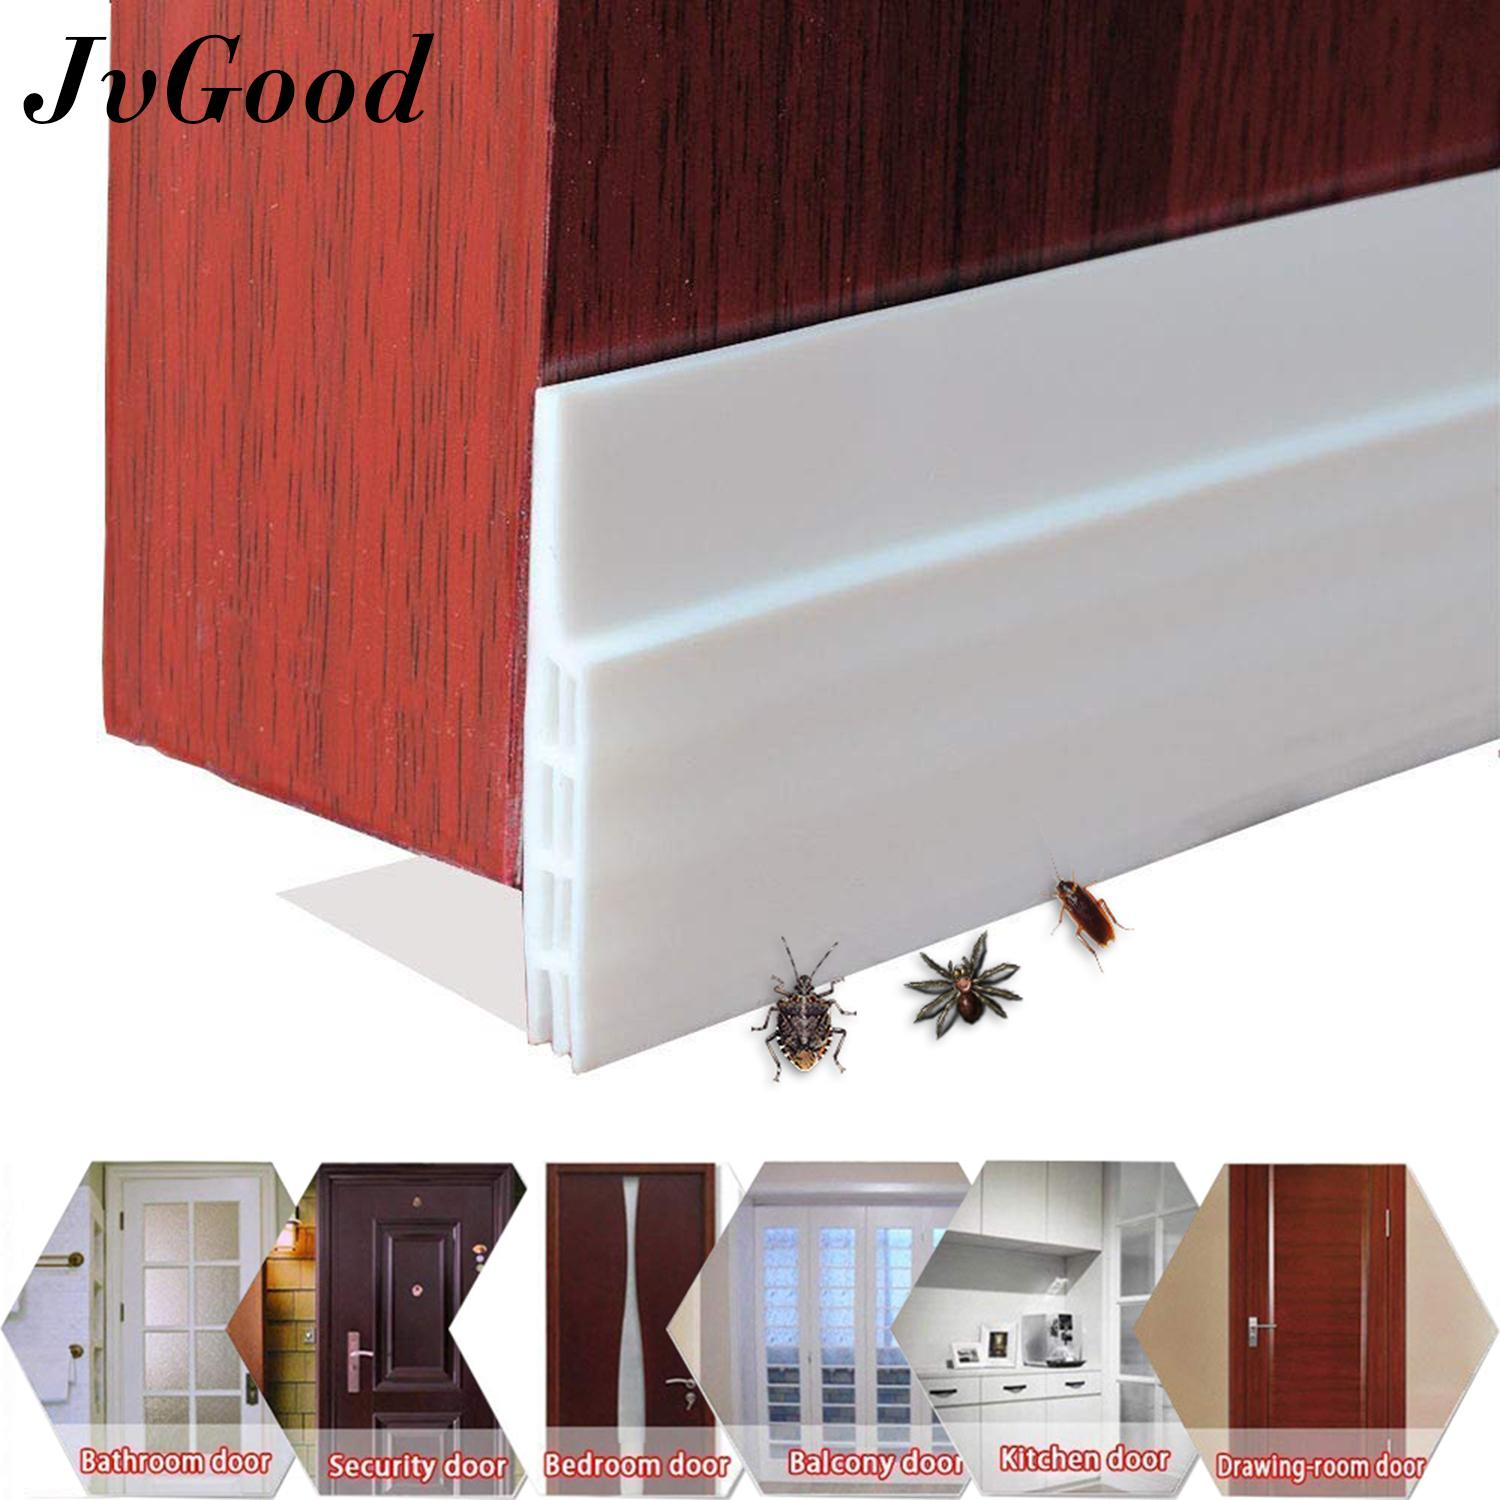 Jvgood Door Bottom Seal Strip Adhesive Under Door Silicone Sweep Weather Stripping Under Door Draft Stopper Rubber Strip Door Block Seal Noise Reduction Dustproof Weatherstrip By Jvgood.